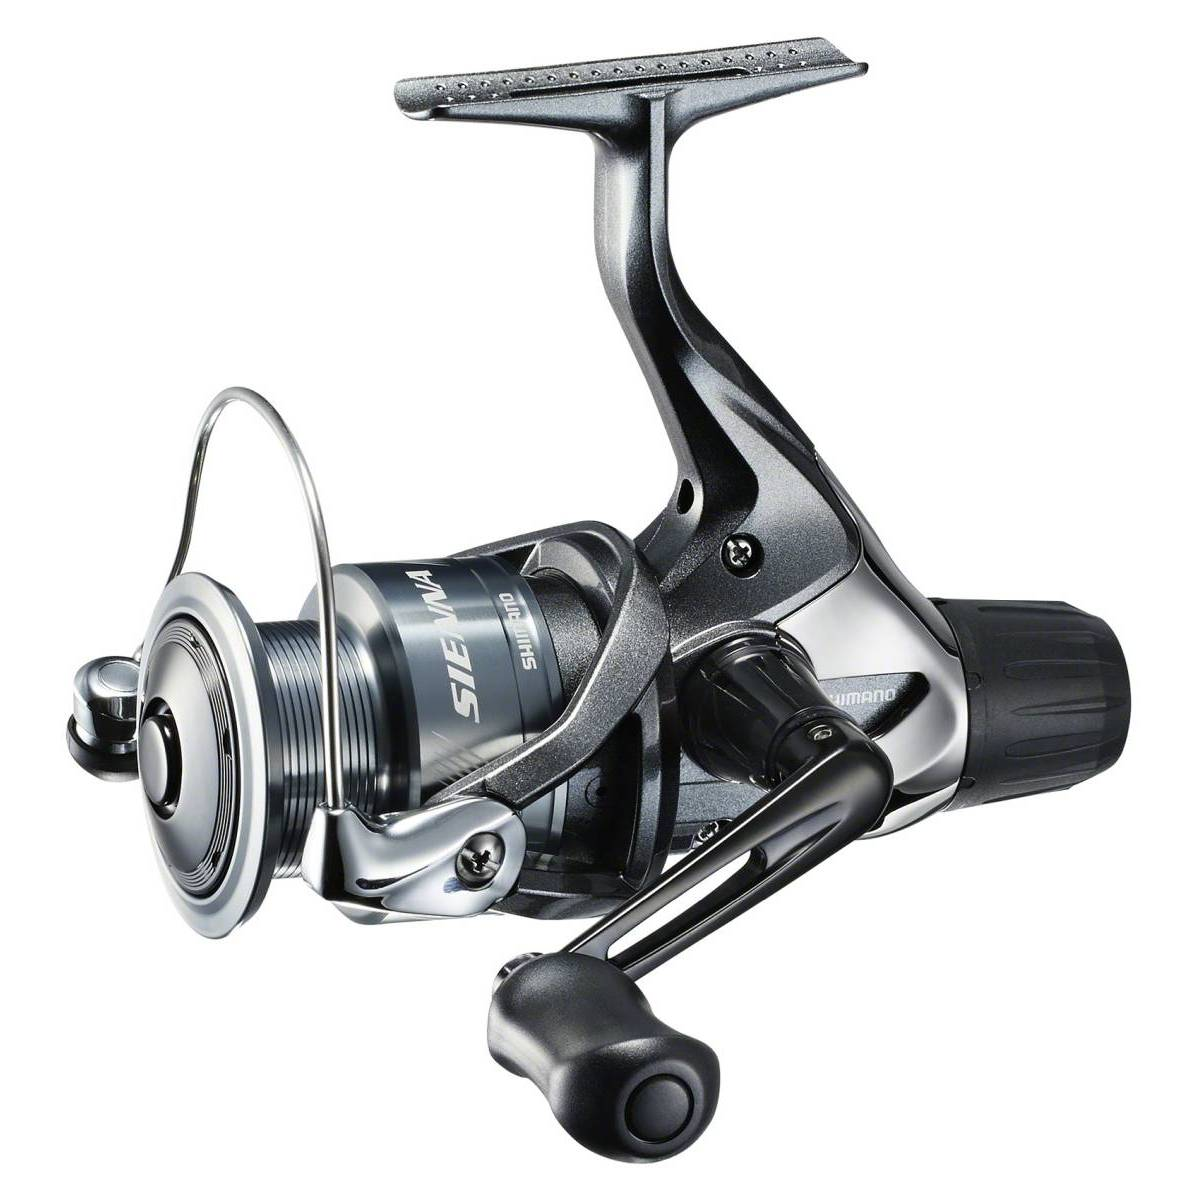 Shimano Sienna; This is part of the Spinning collection offered from Fishin' My Best Life - fishinmybestlife.com